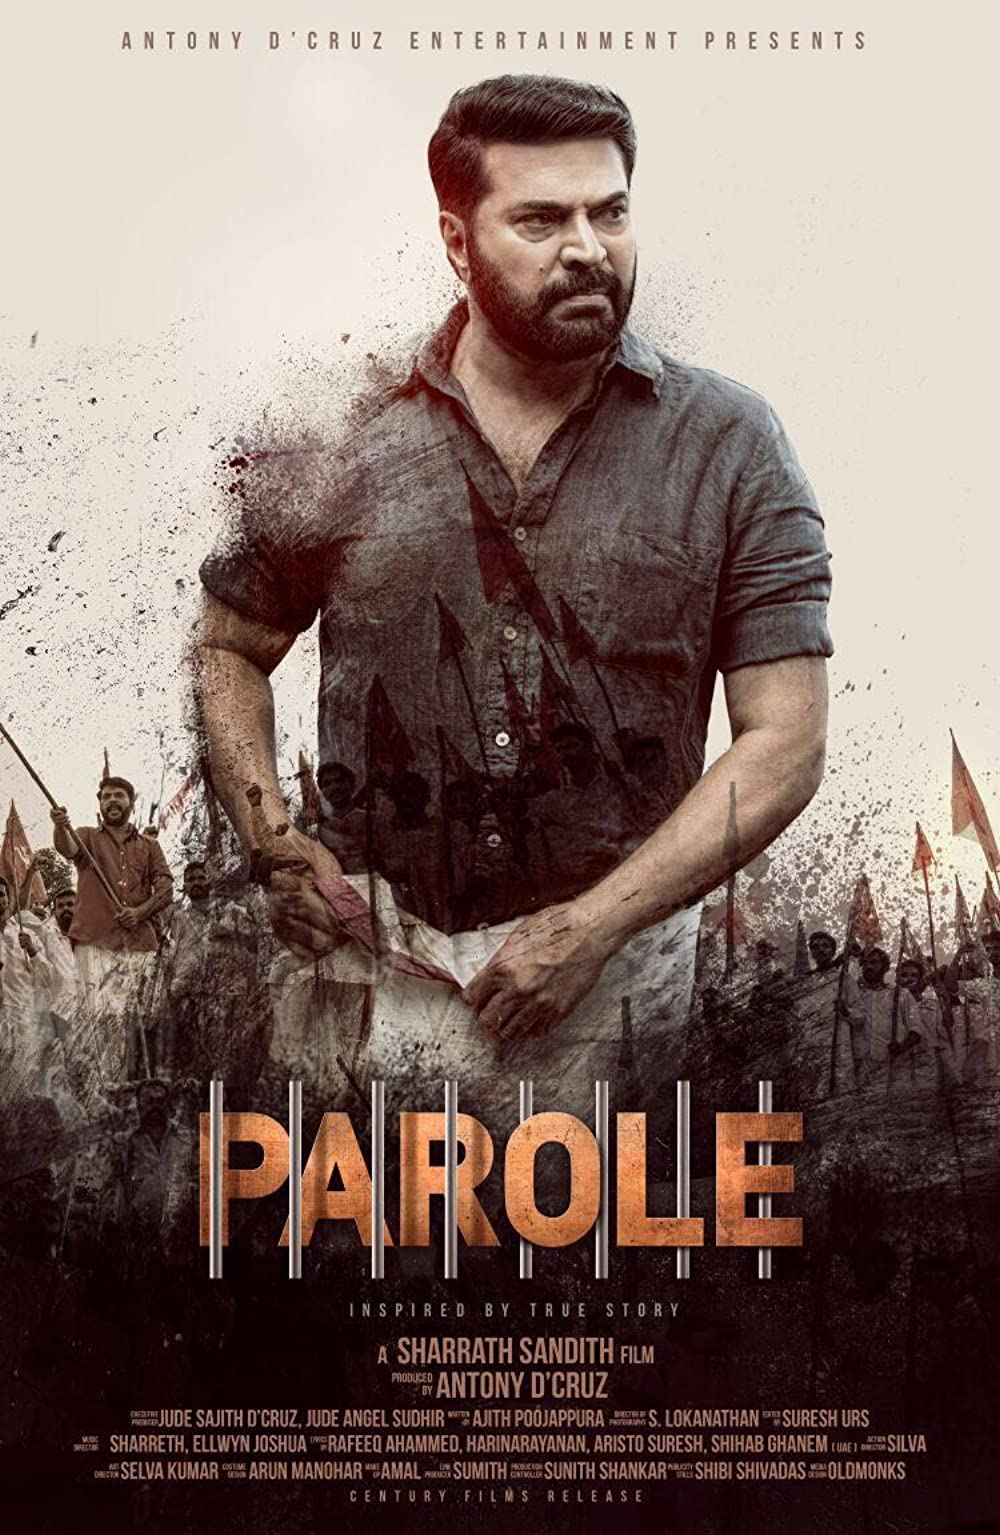 Parol (Parole) 2021 Hindi Dubbed 400MB HDRip 480p x264